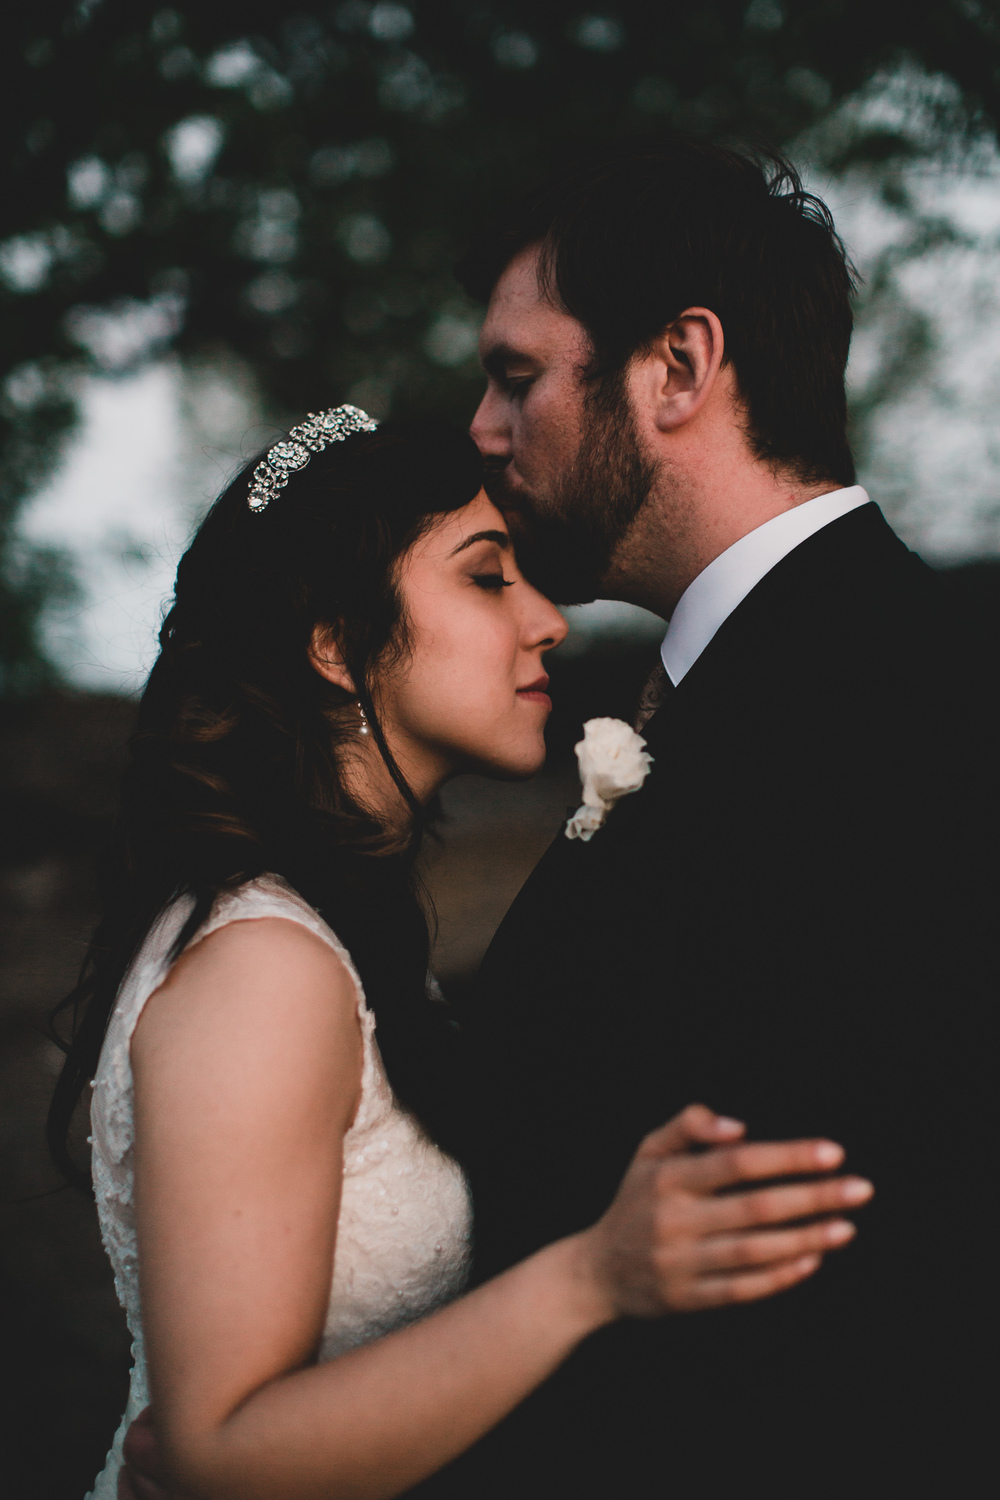 Romantic evening wedding portraits